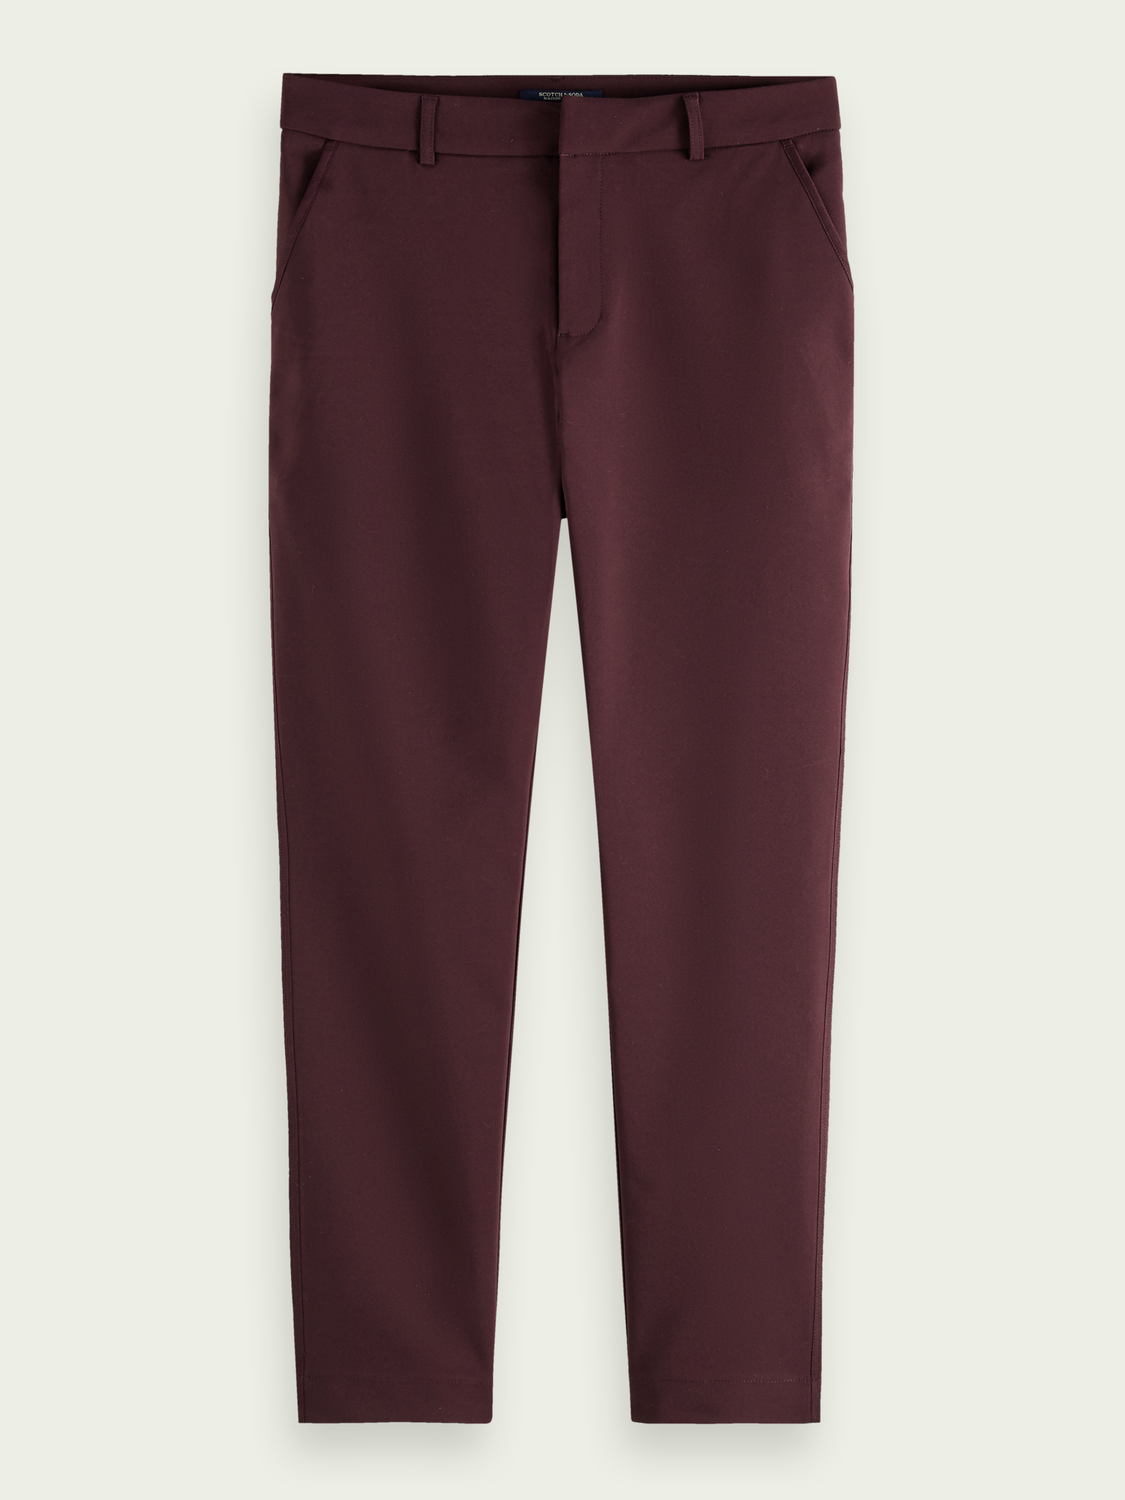 Women Cotton-blend stretch tailored pants with contrast binding